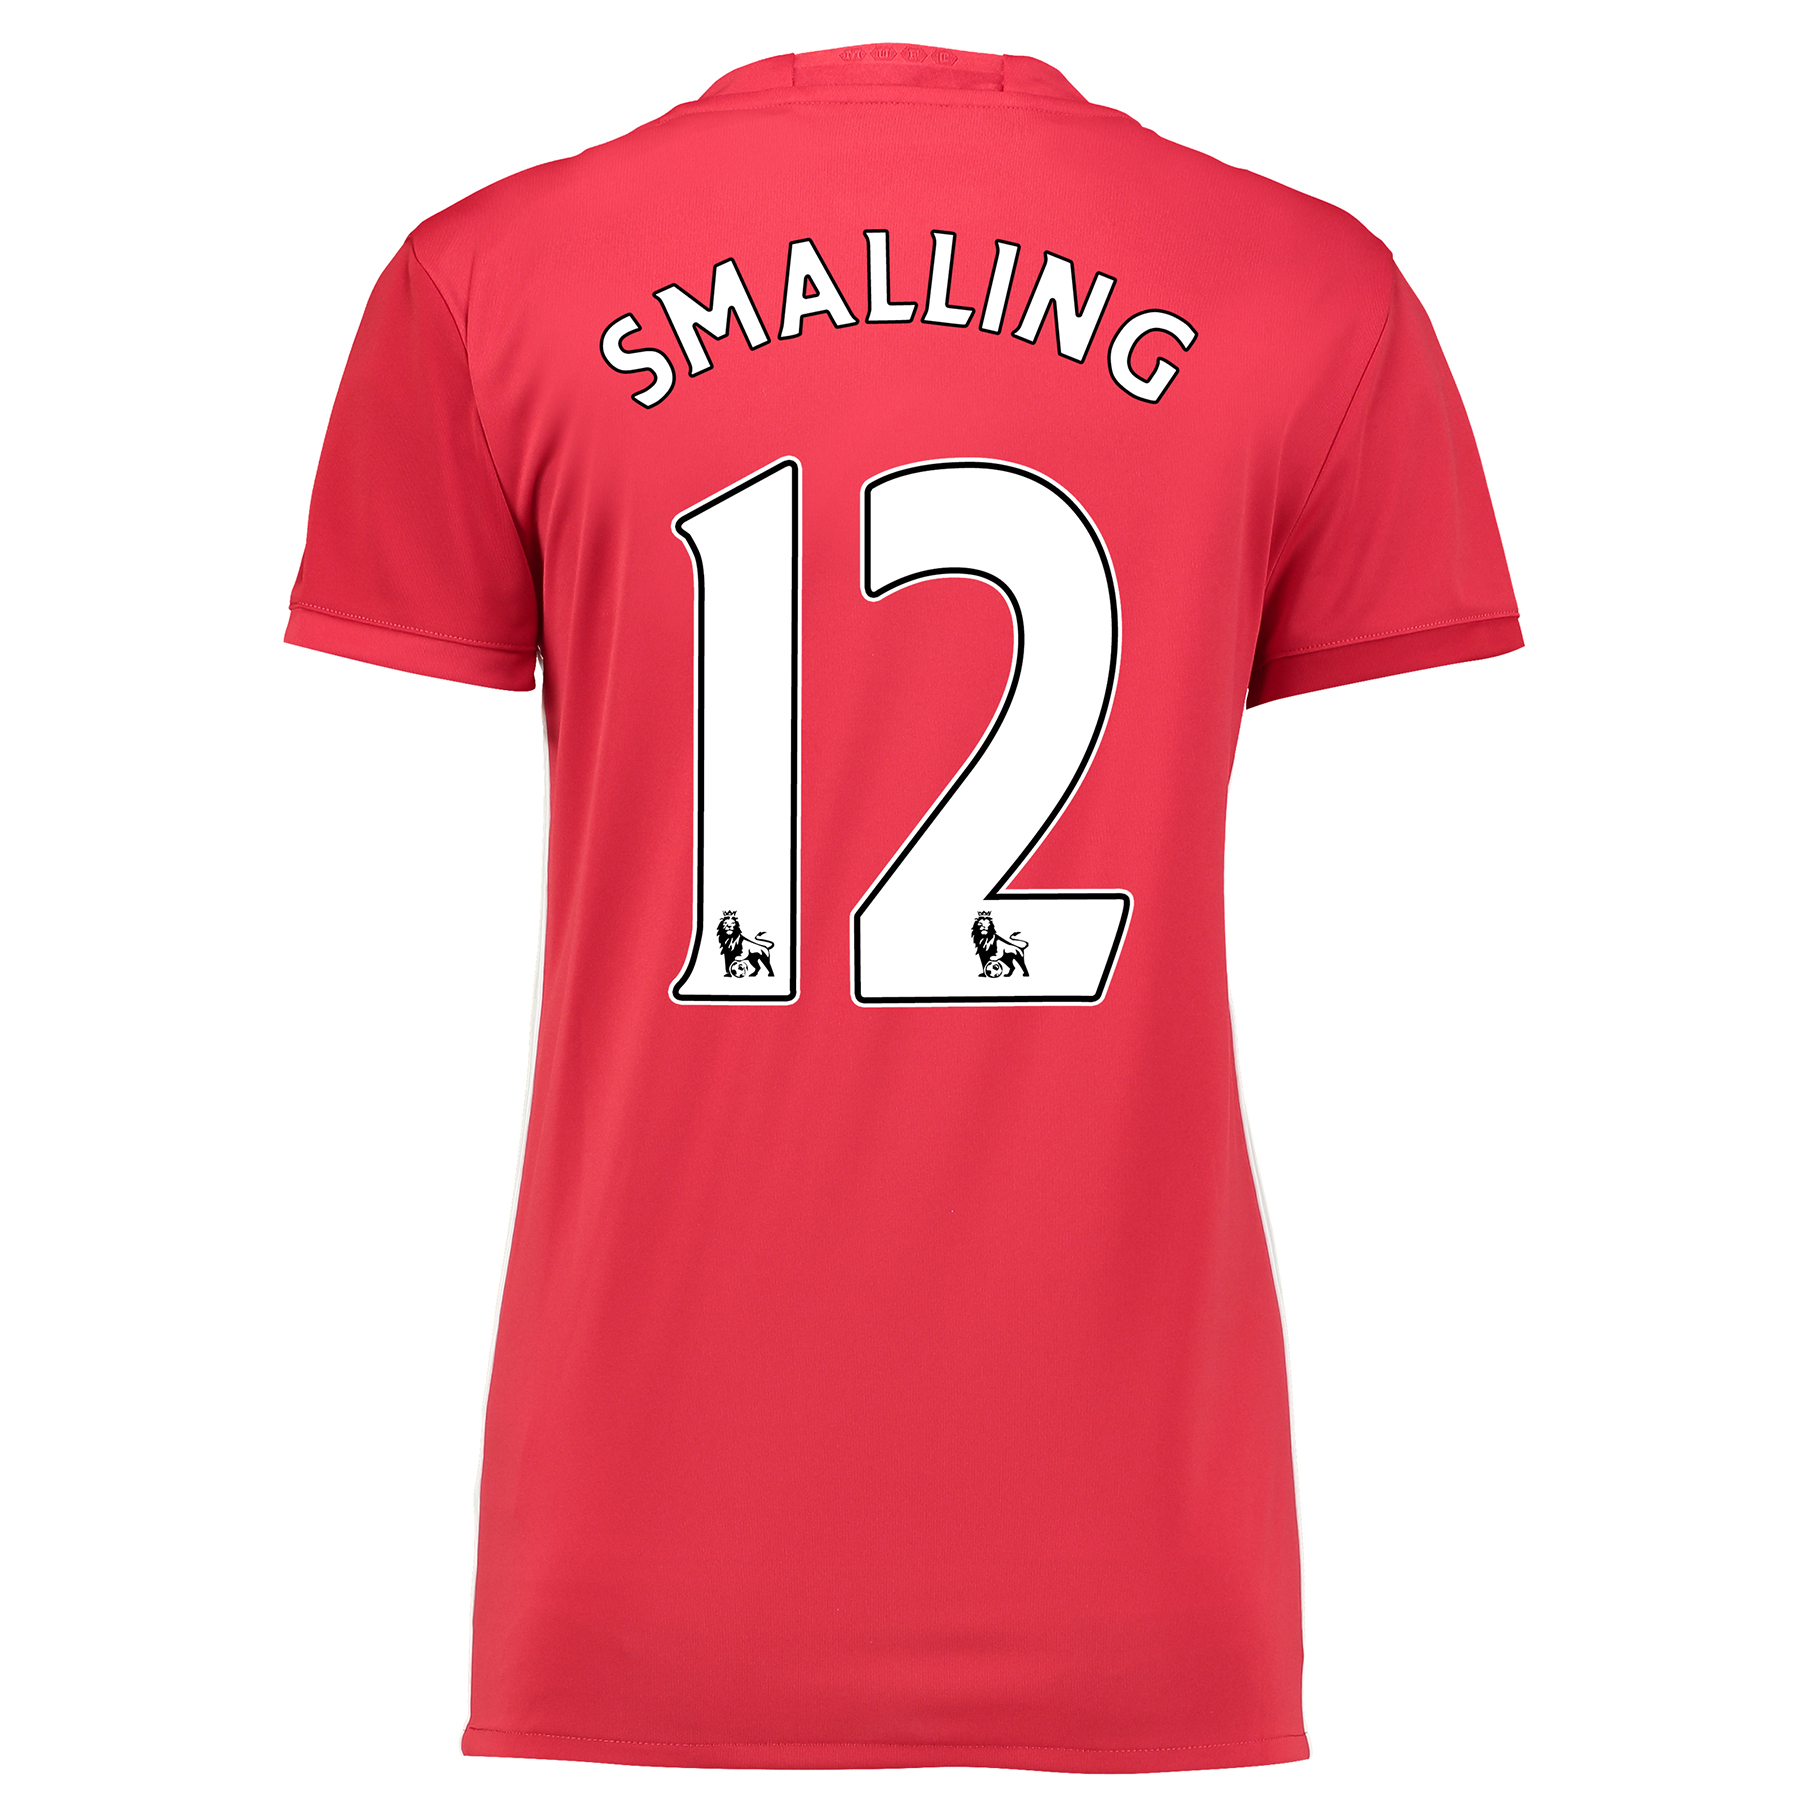 Manchester United Home Shirt 2016-17 - Womens with Smalling 12 printin